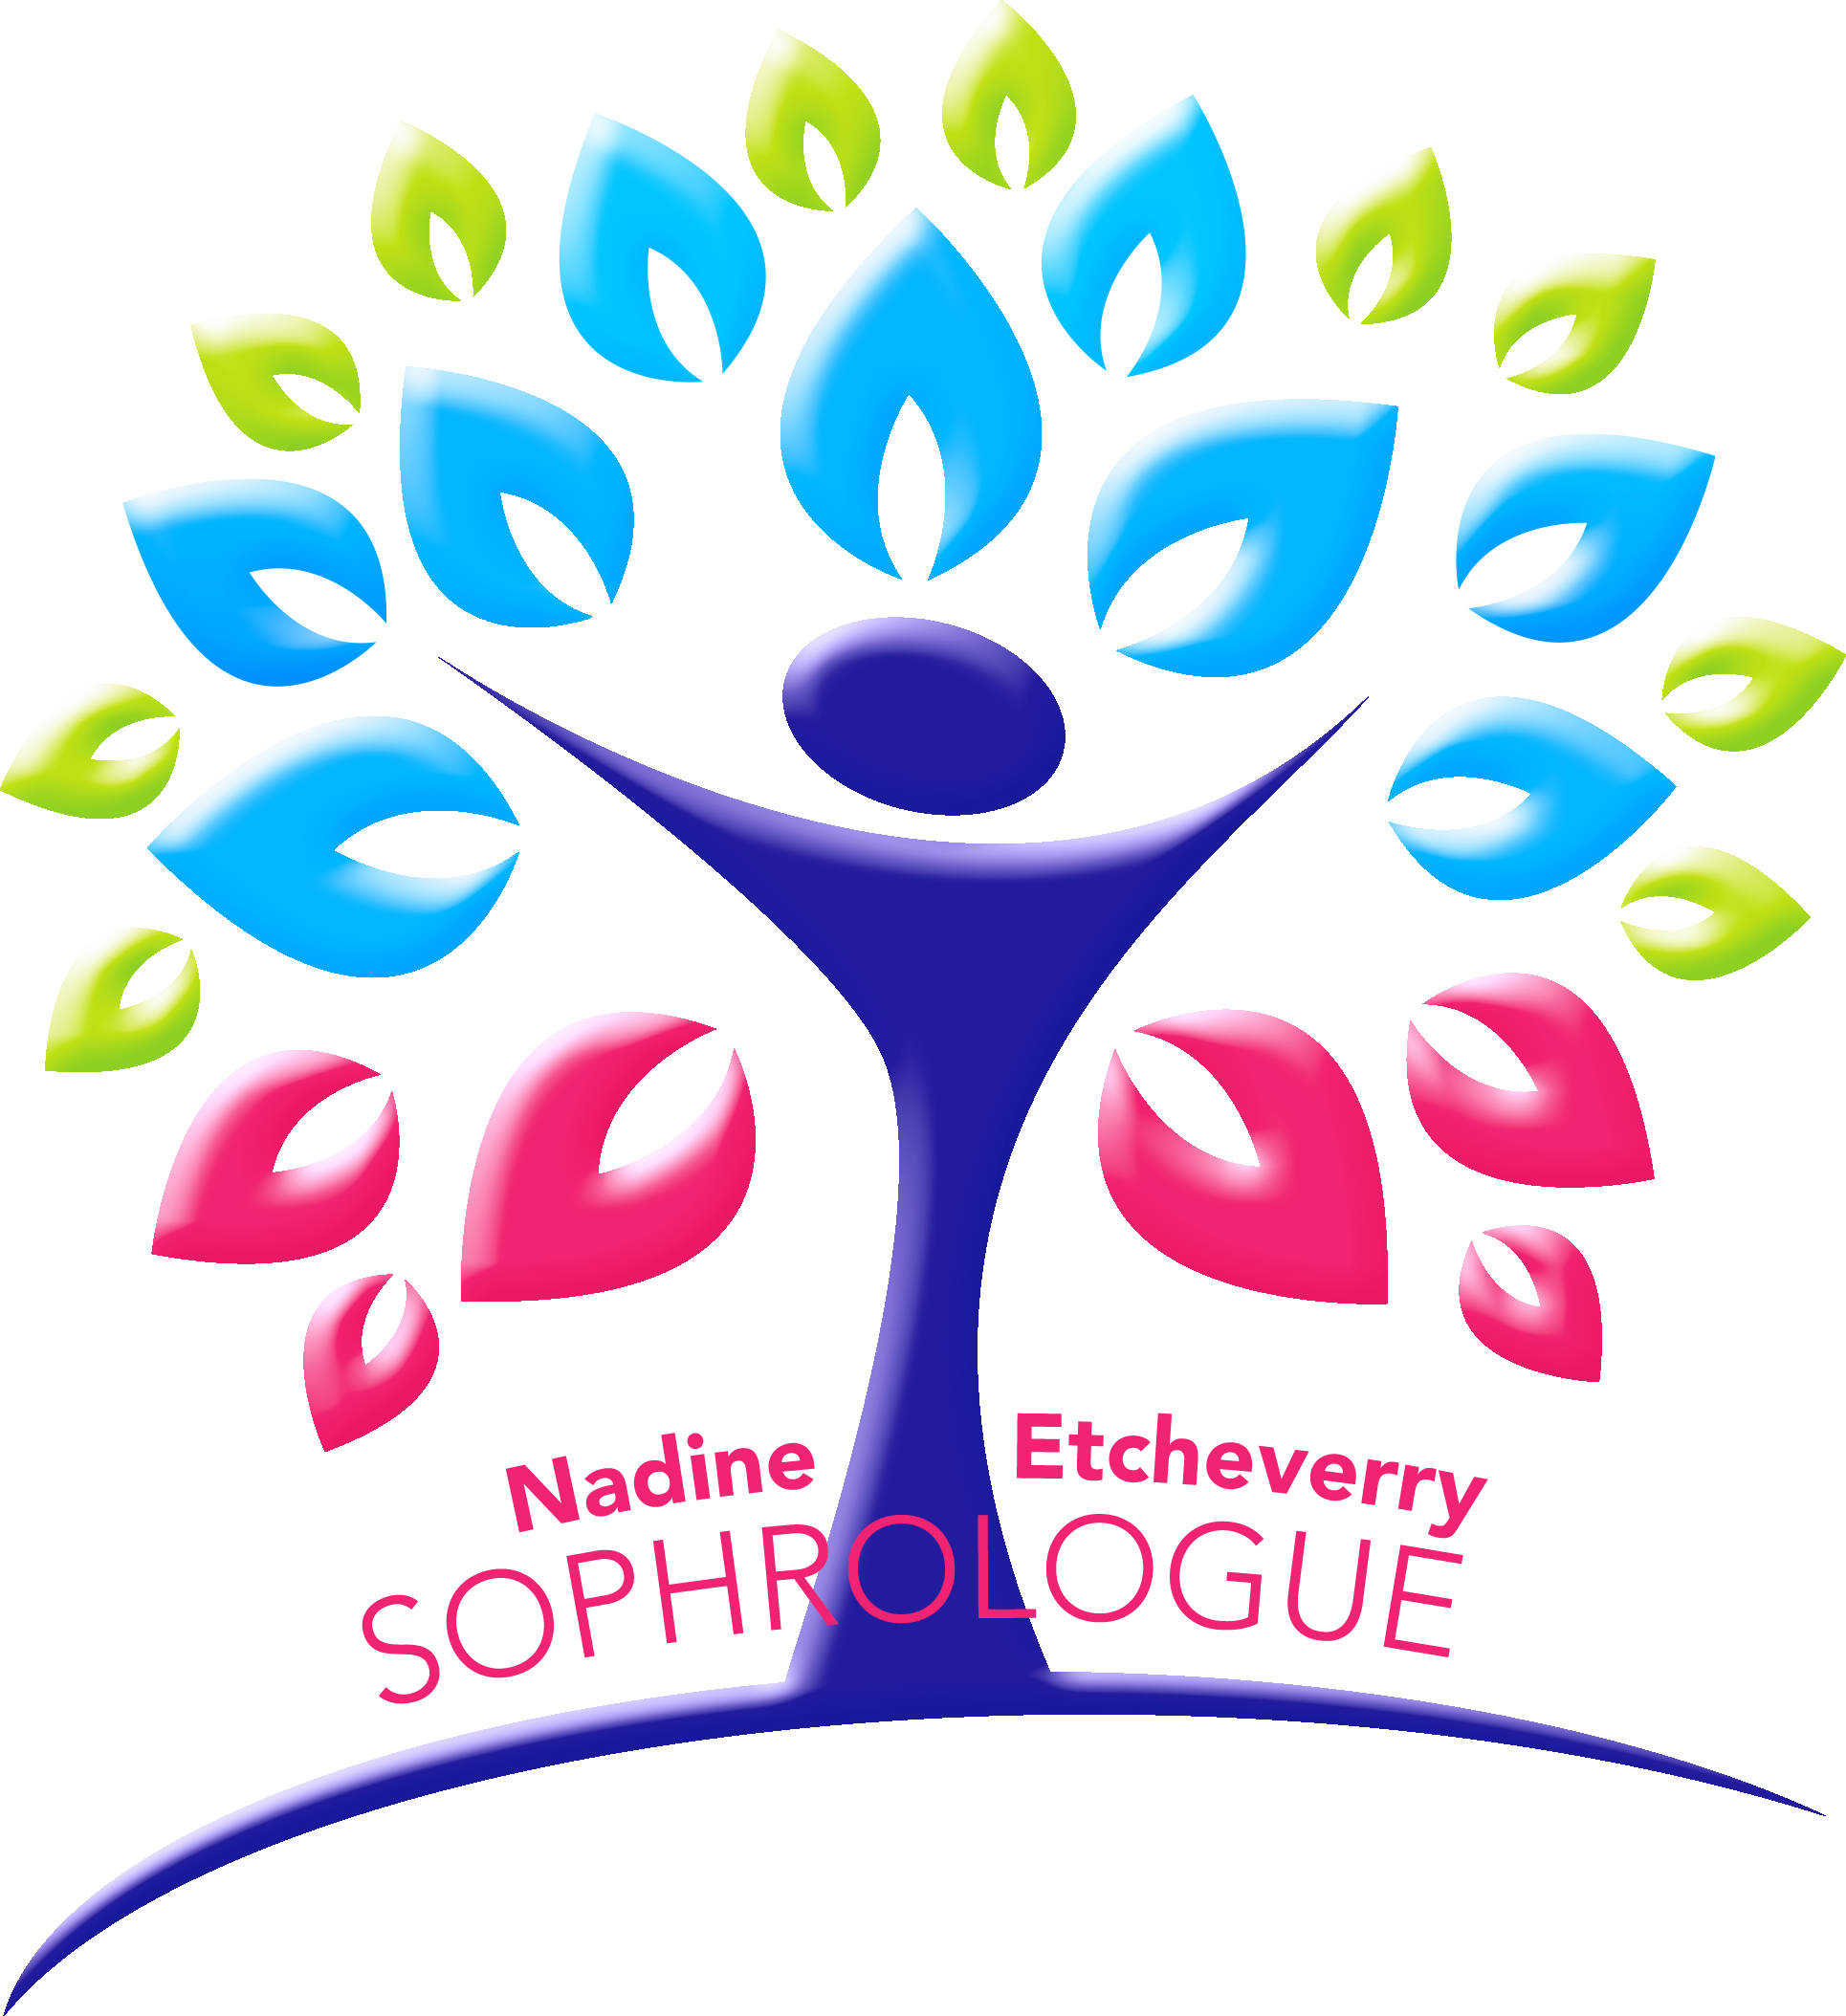 Me contacter nadine etcheverry sophrologue - Chambre syndicale des sophrologues ...